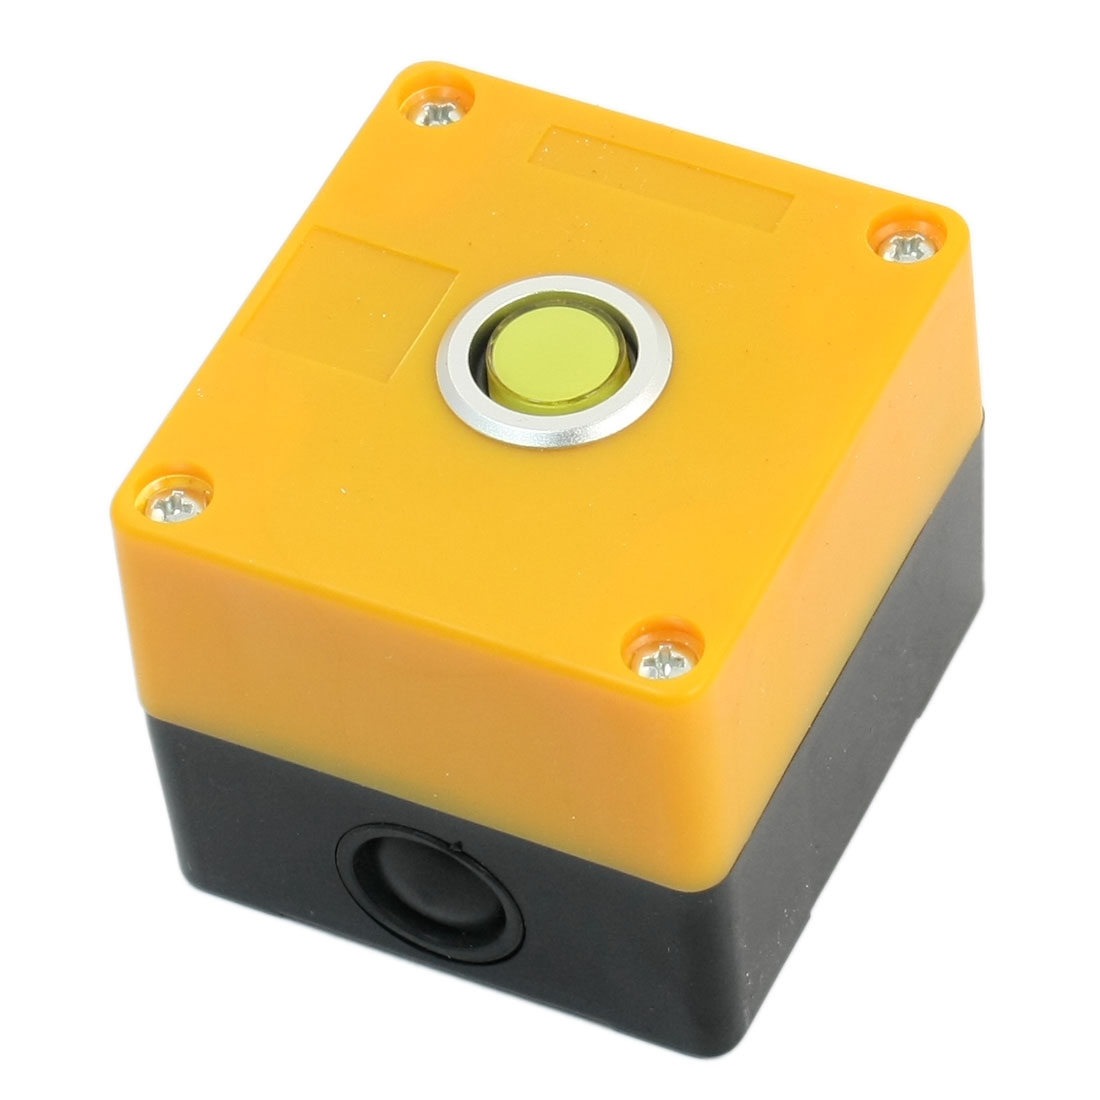 12V 15mm Dia Round Cap Rectangle Plastic Case Yellow Signal Indicator Light Pilot Lamp Control Station Box